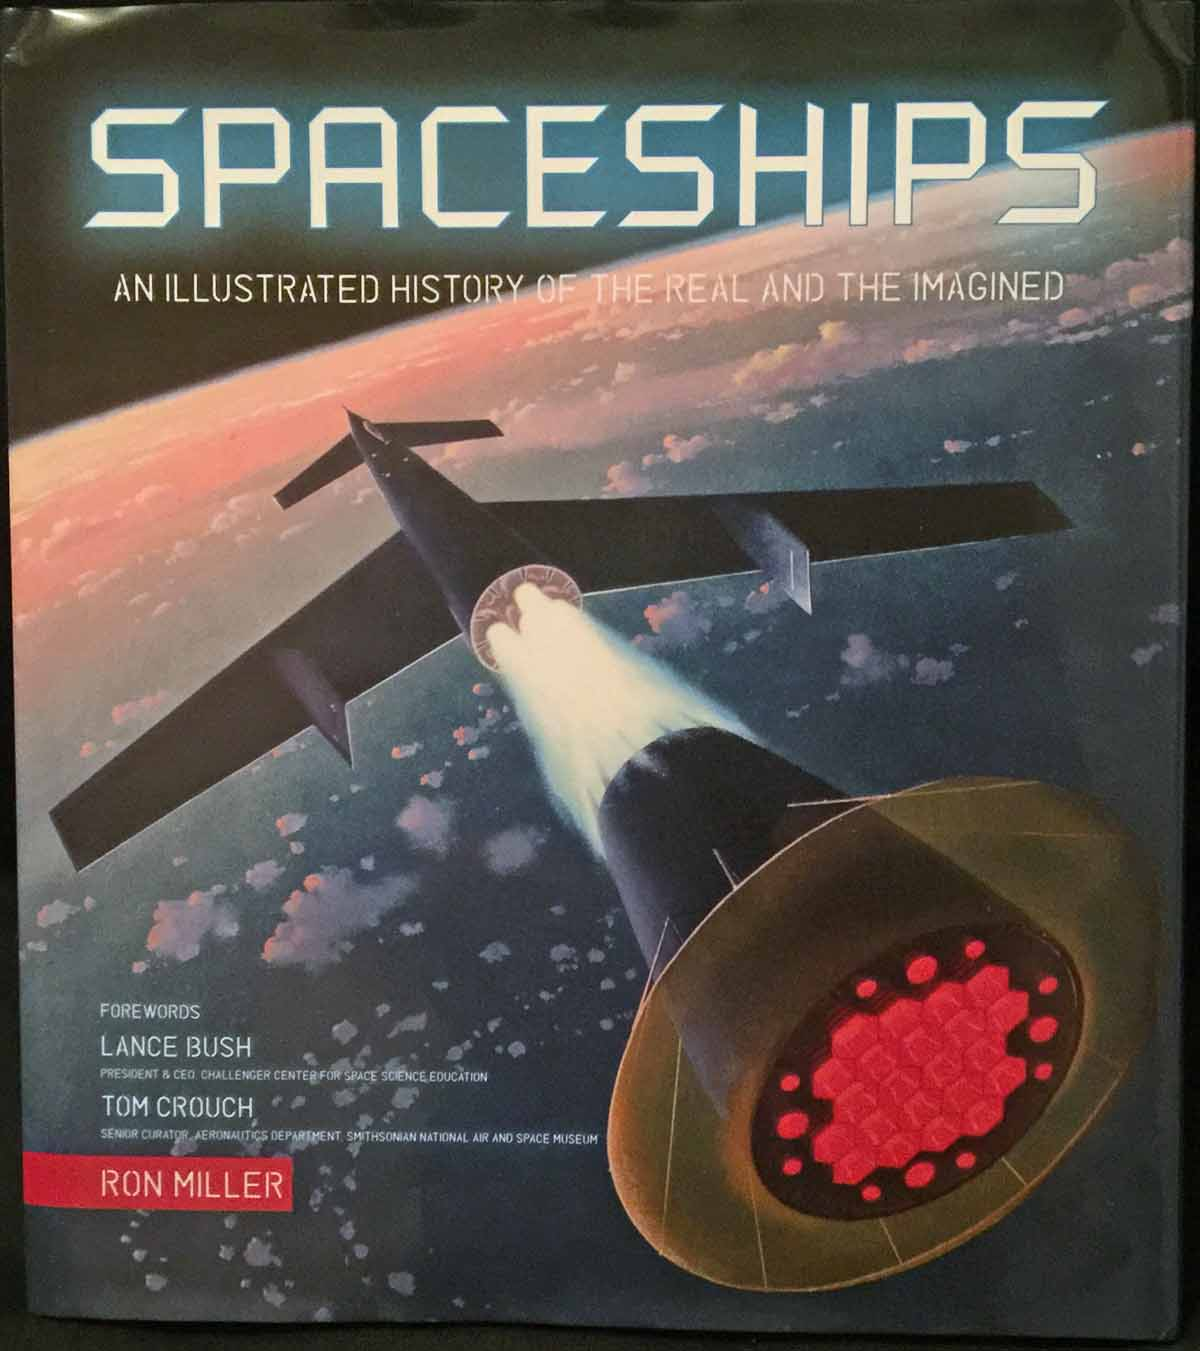 Spaceships, the book